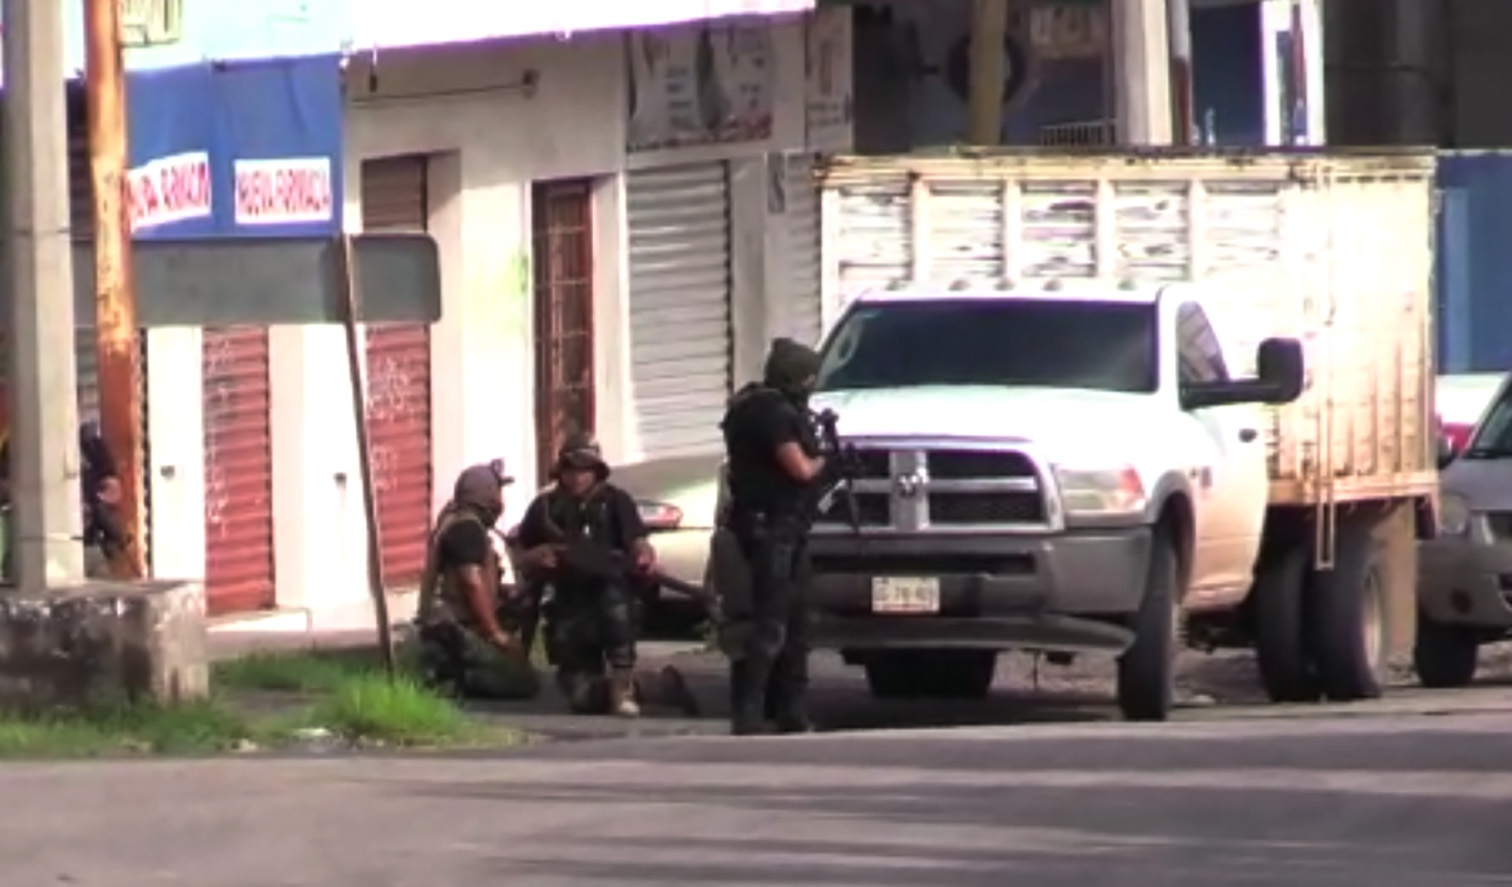 Fierce gun battle rocks El Chapo's bastion in Mexico